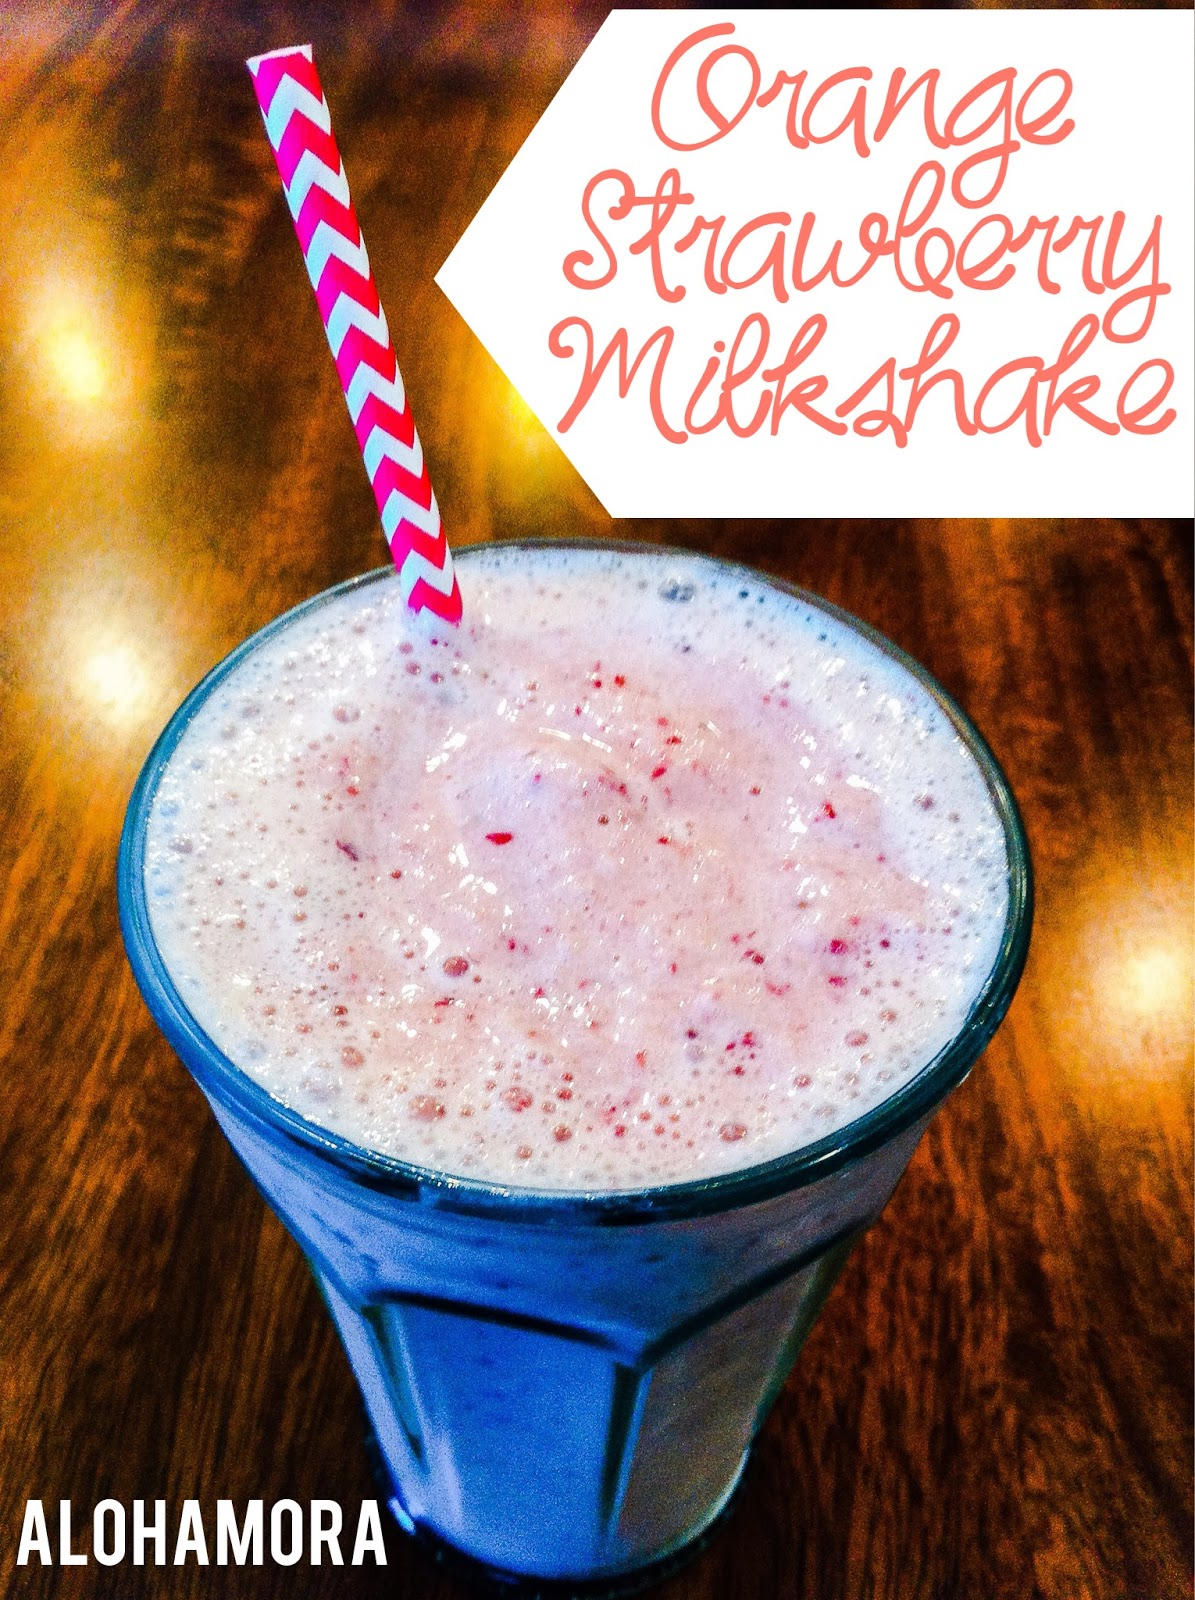 Fast, Easy, and Delicious Orange Strawberry Milkshake. Alohamora Open a Book http://alohamoraopenabook.blogspot.com/